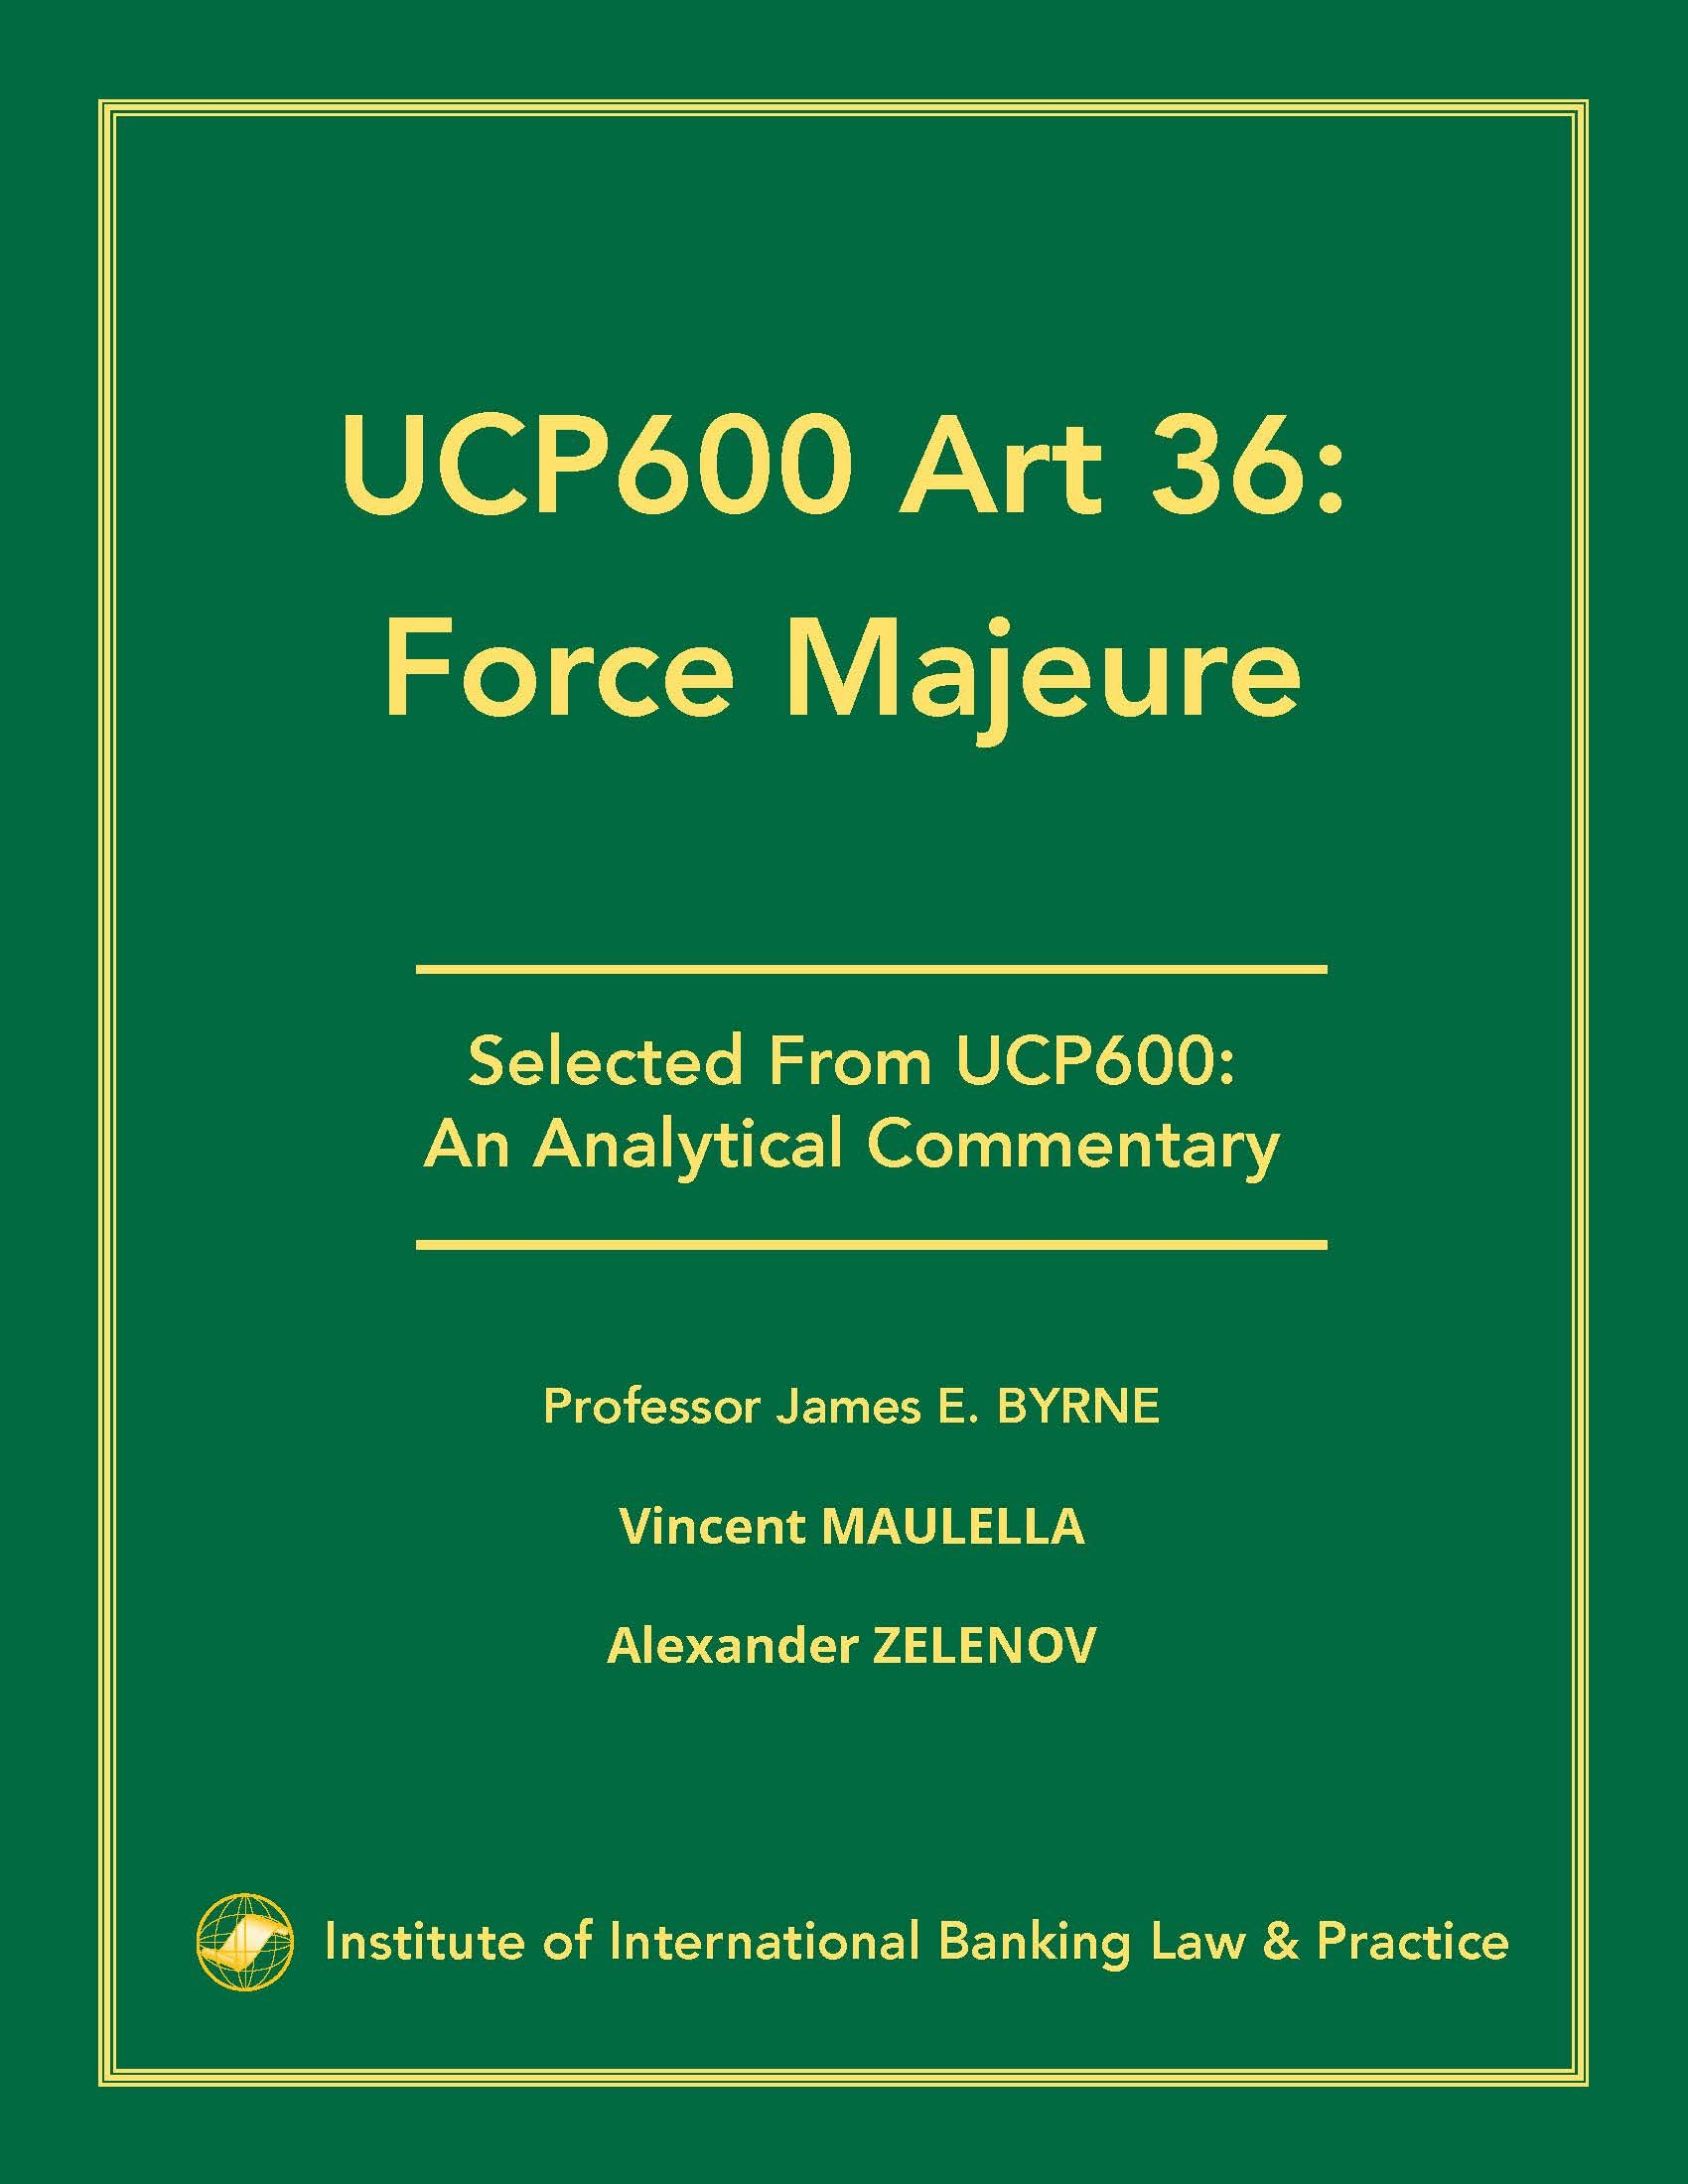 Force Majeure: Understanding UCP600 Article 36